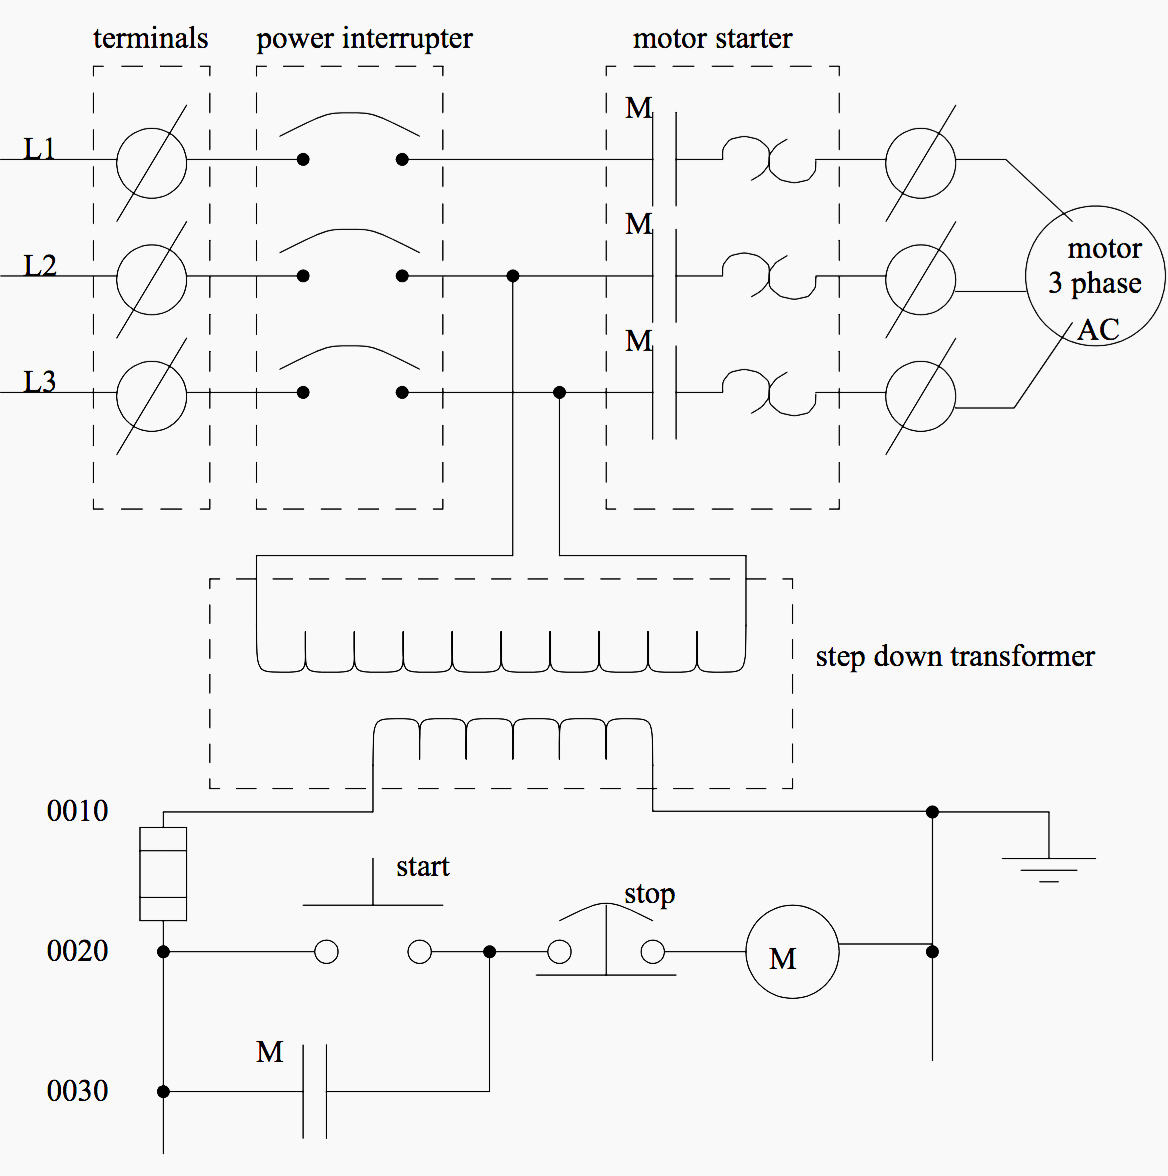 motor-controller-schematic  Sd Blower Motor Wiring Diagram on a. o. smith, relay hvac, ford mustang, gm heater, f700 ford, air conditioning, tappan heater, for 06 civic,